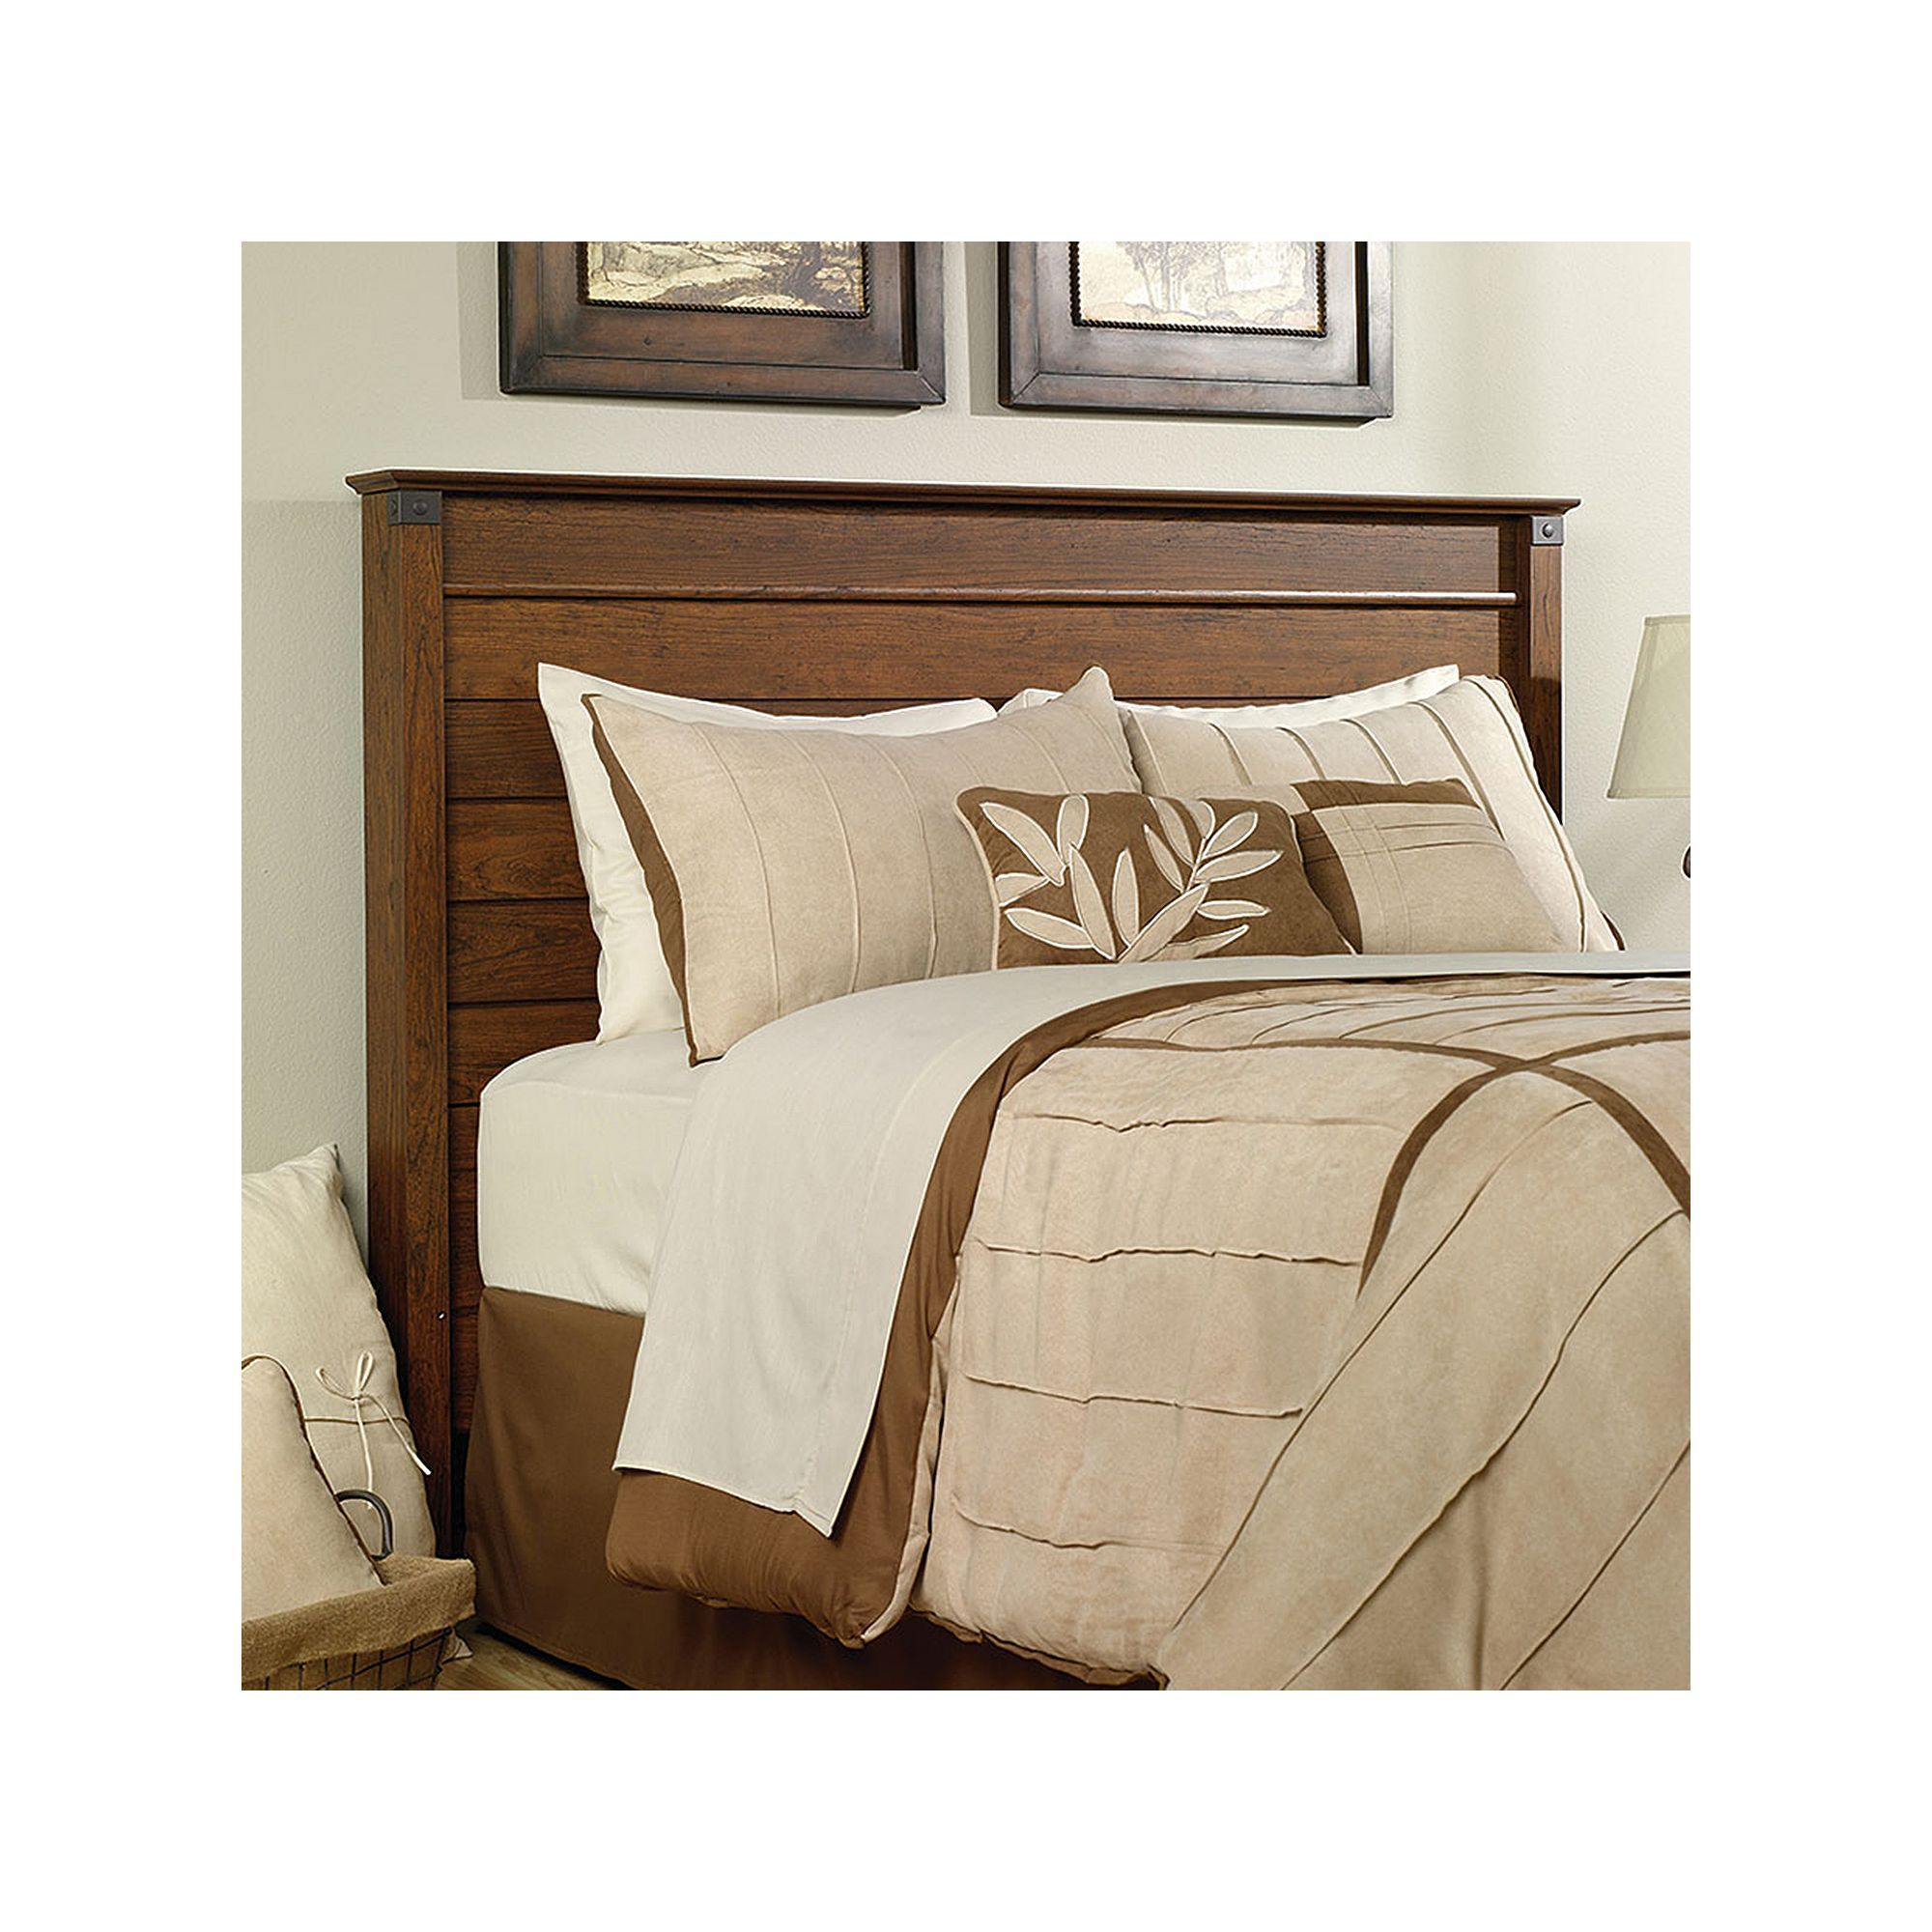 Sauder Carson Forge Collection Full Queen Headboard Brown Bedroom Headboard Bed Furniture